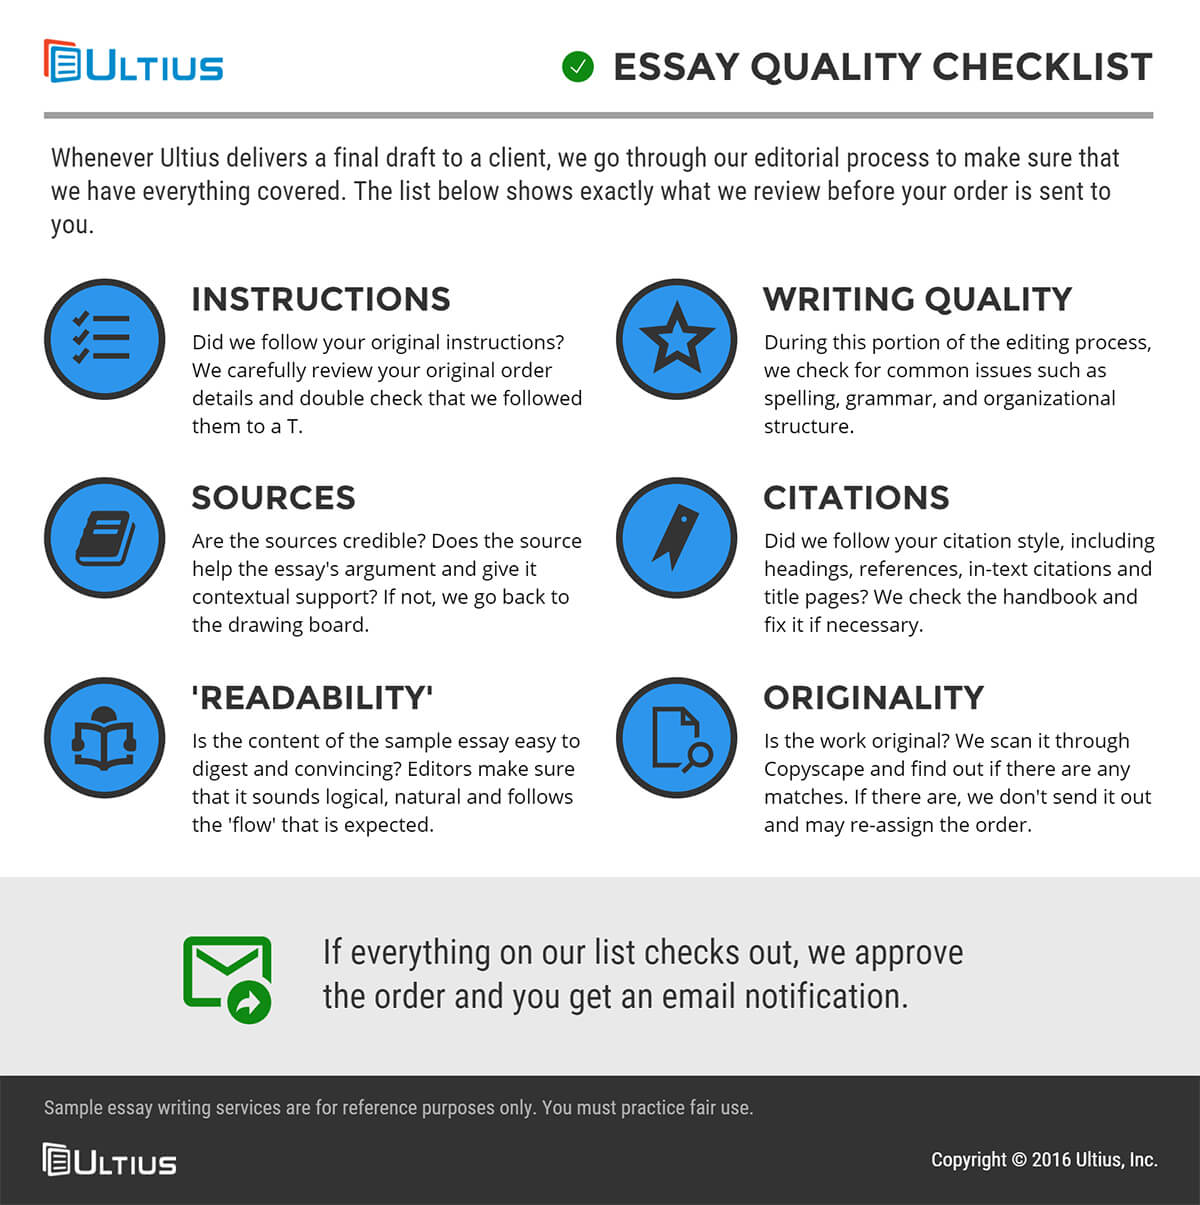 buy essay papers buy essay papers online buy essay online original buy essay online original american writers ultiuspurchased essay quality checklist